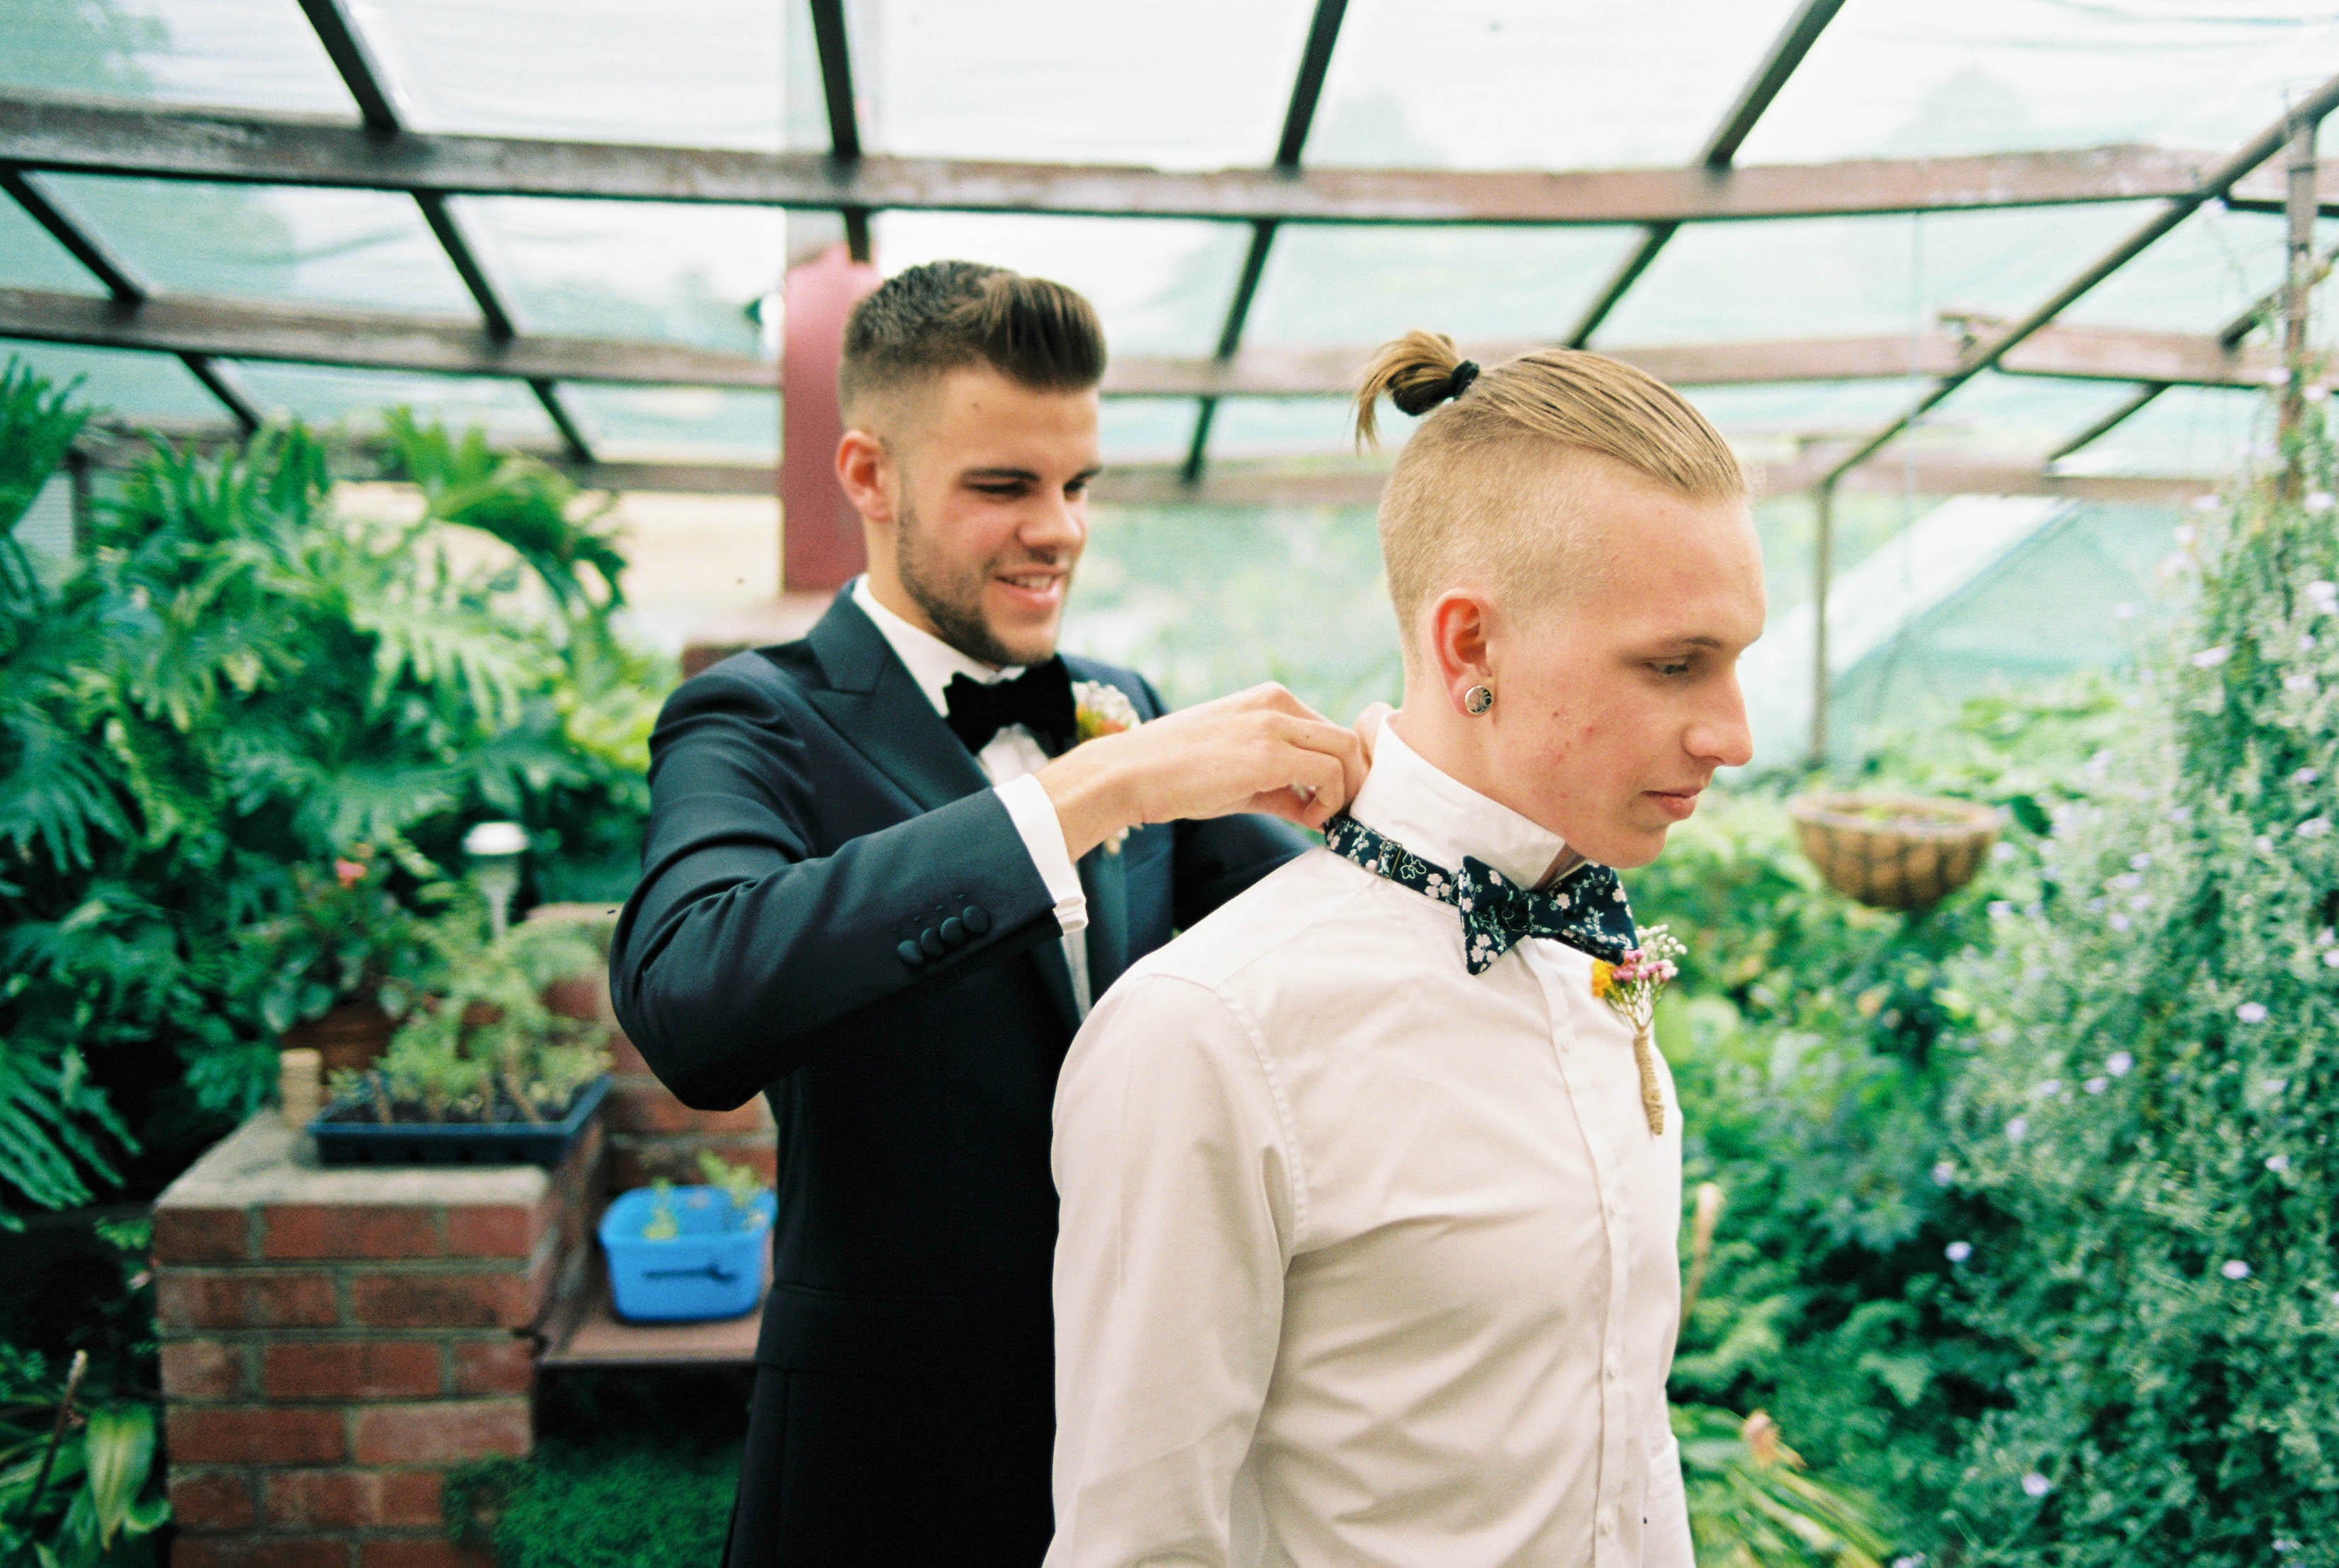 The groom helps one of his groomsmen put on his bowtie, hand-painted by the Groom's Mum taken by a film wedding photographer